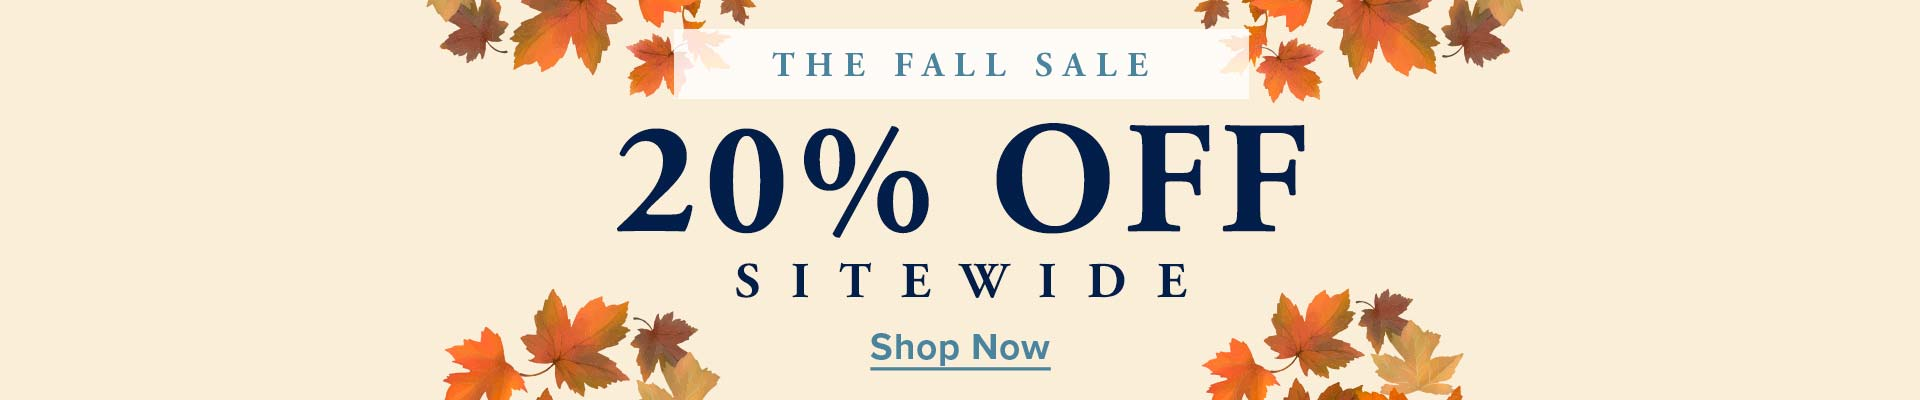 The Fall Sale - 20% Off Sitewide